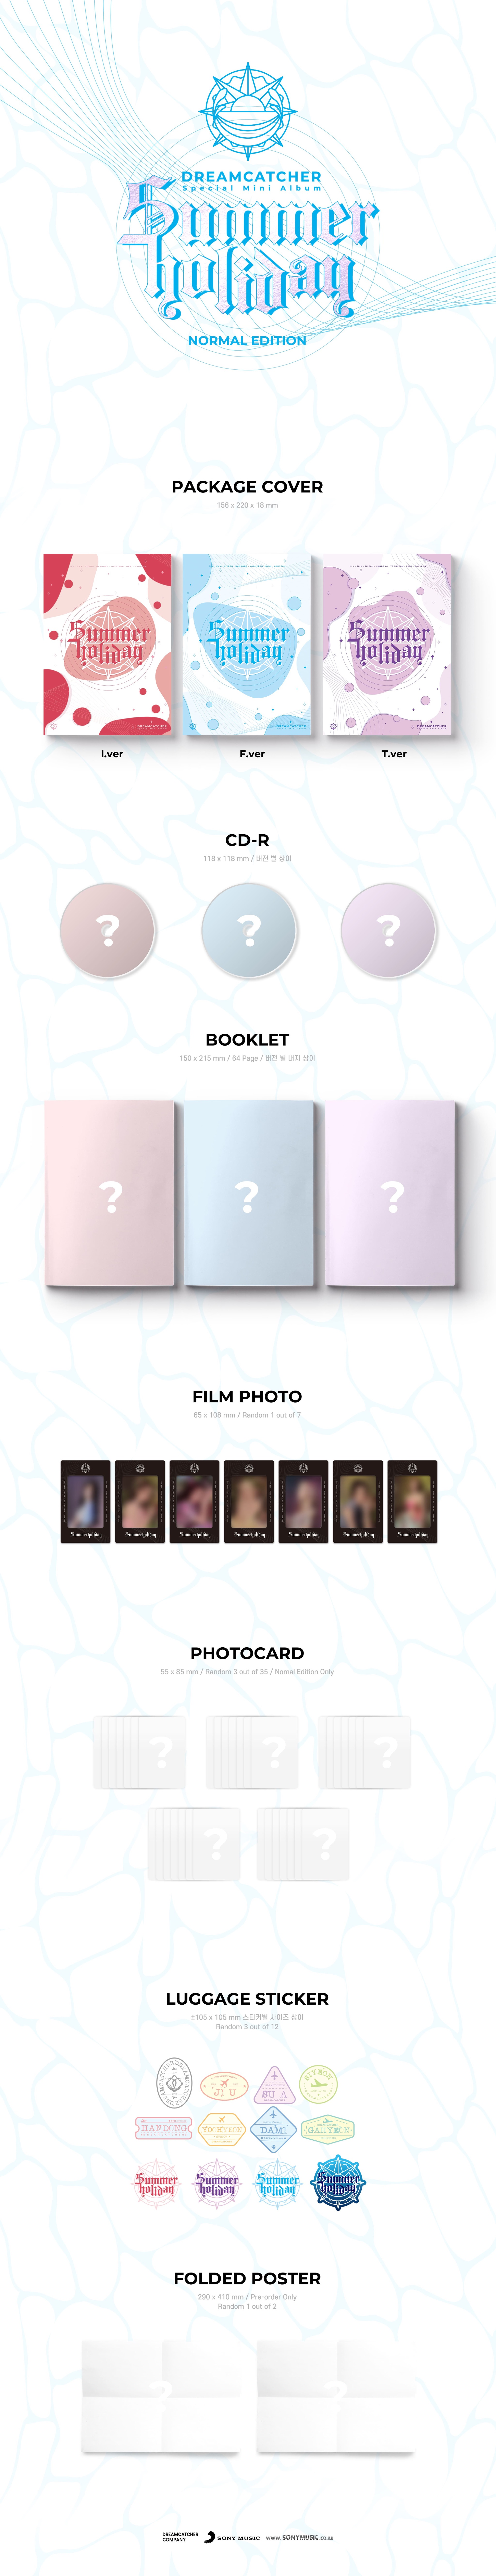 DREAMCATCHER - Summer Holiday (Normal Edition) - Special Mini Album